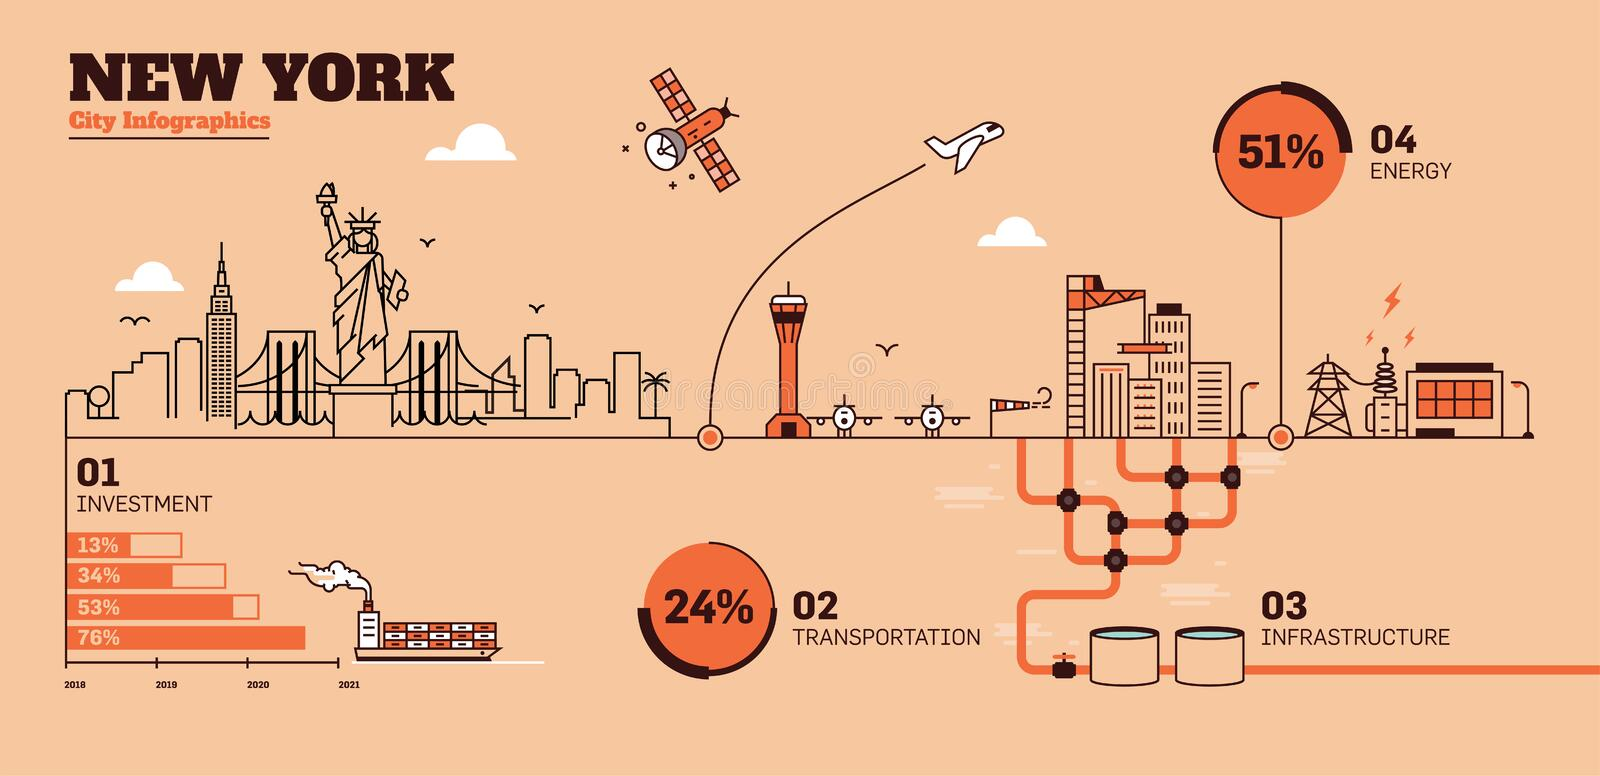 New York City Flat Design Infrastructure Infographic Template vector illustration